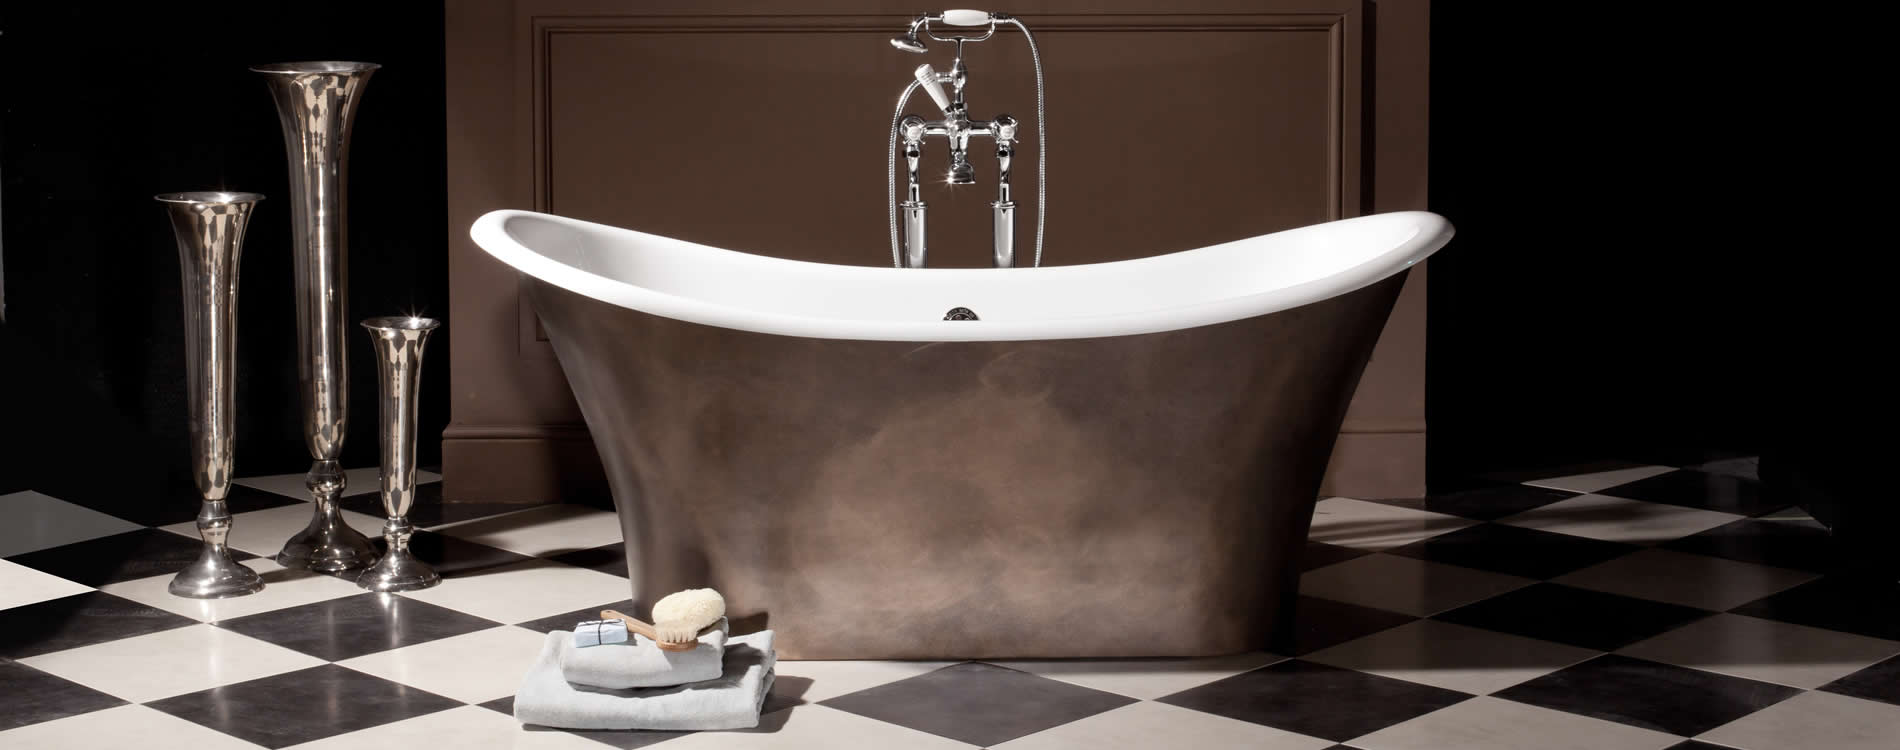 Quality Bathroom Installations In Norfolk The Norfolk Bathroom Company